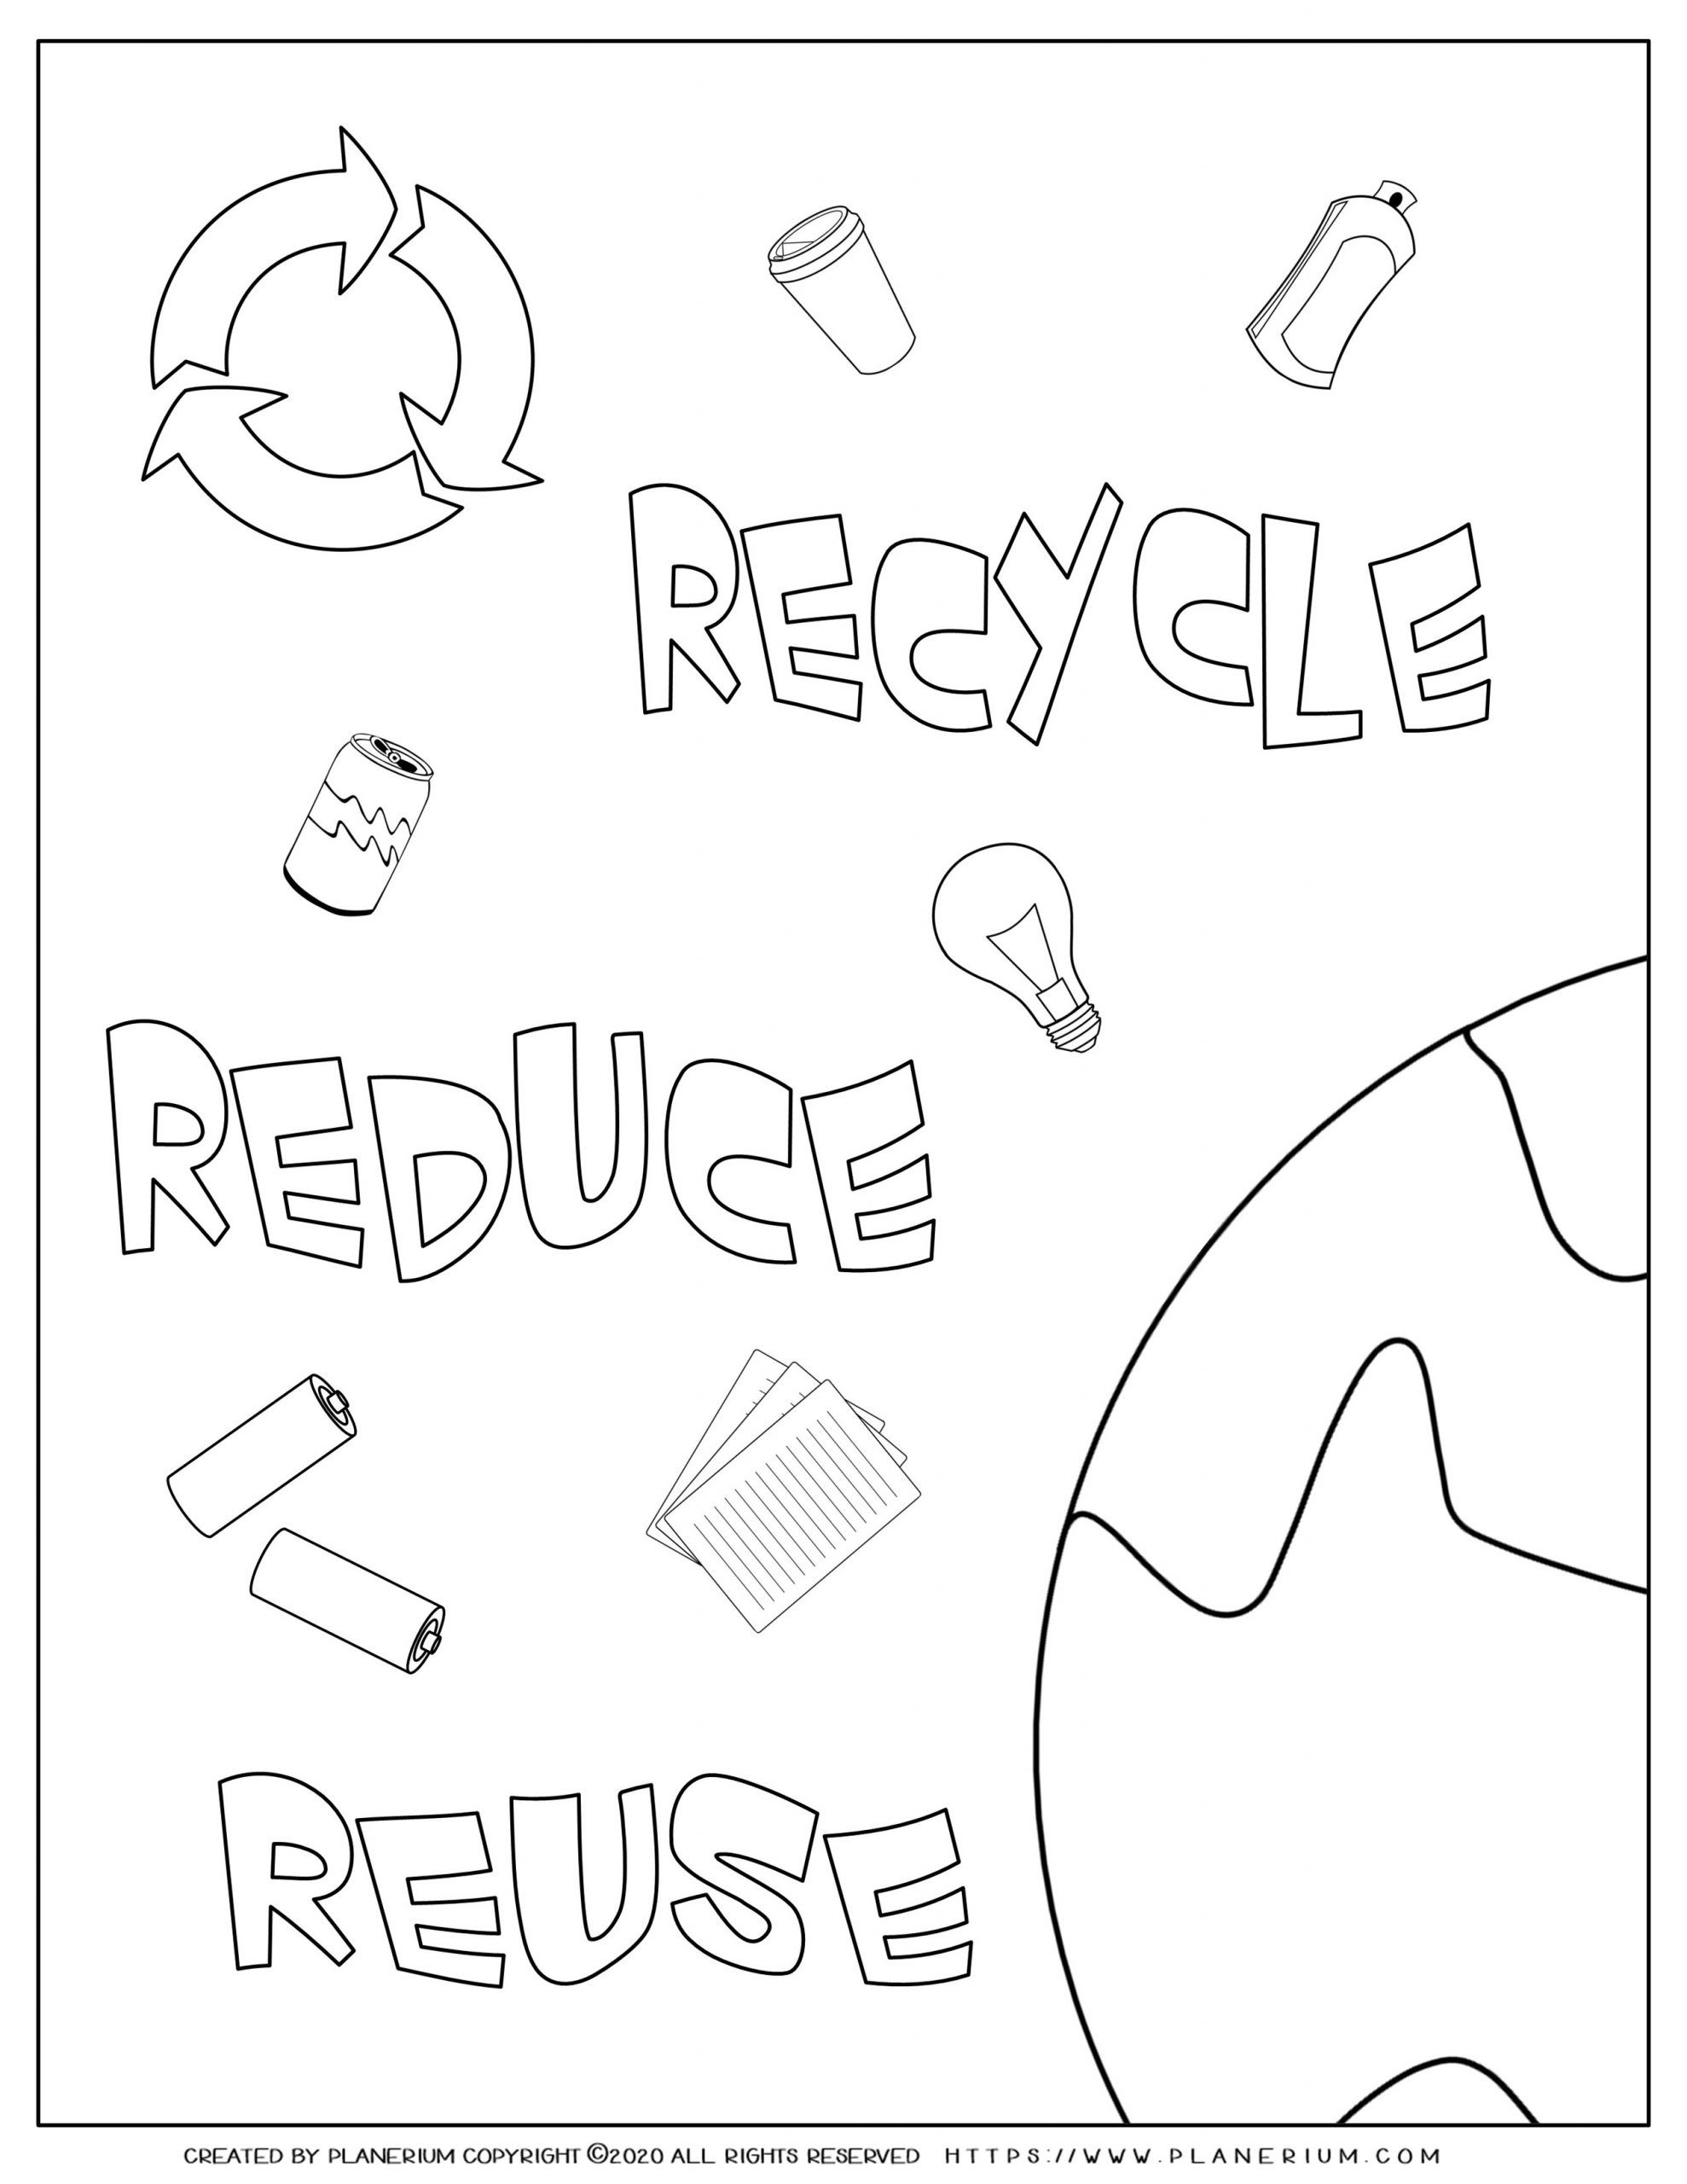 Earth day - Coloring page - Recycle Reduce and Reuse